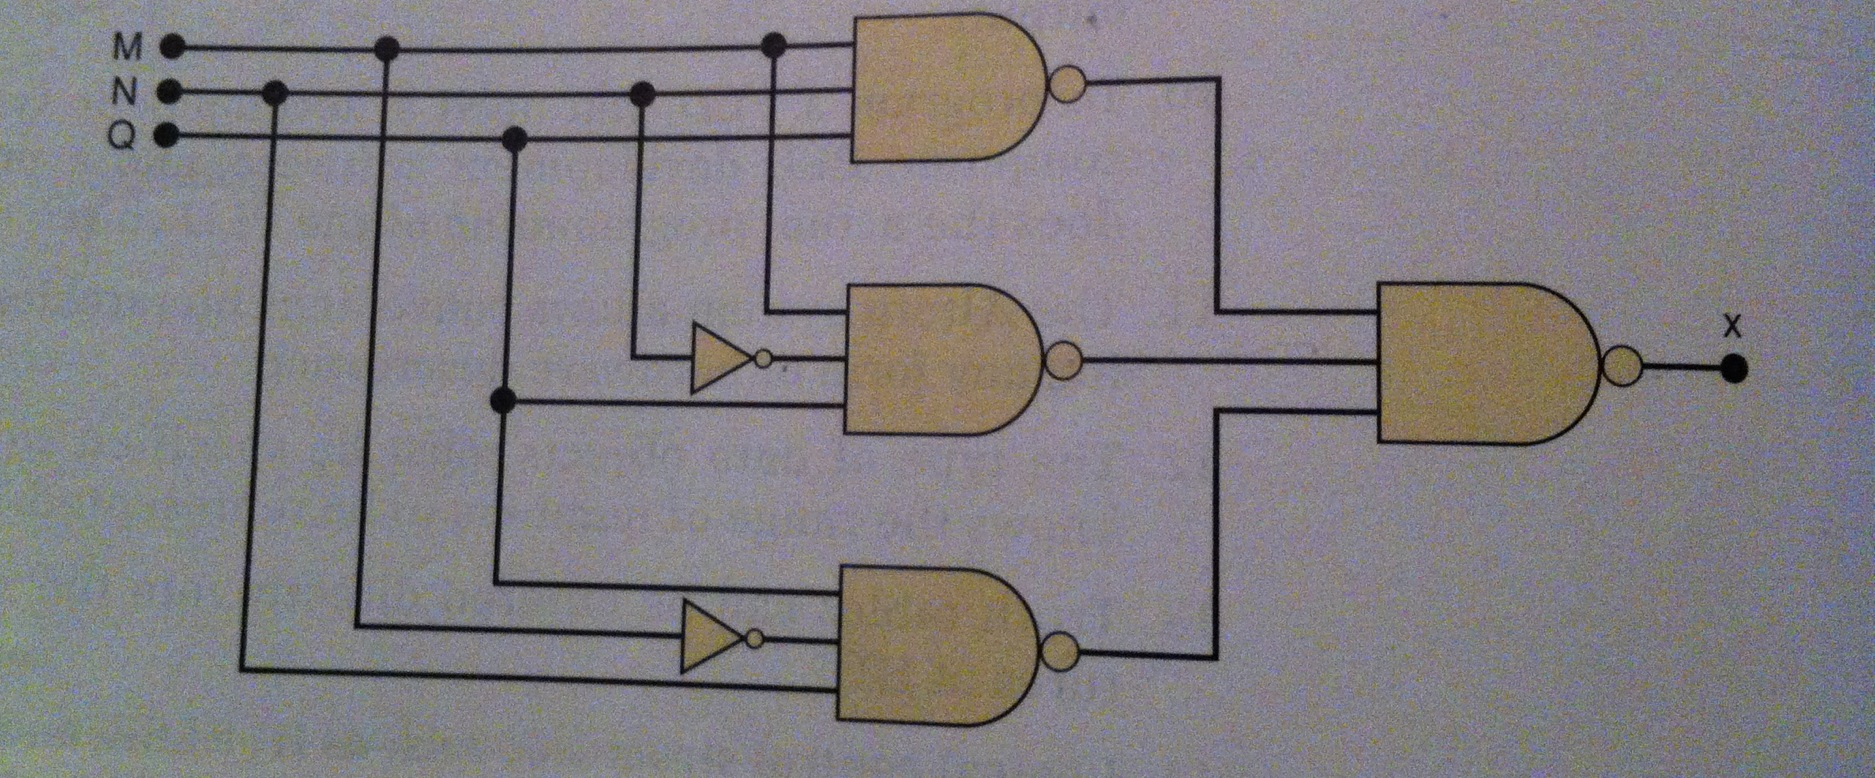 Simplify the circuit using Boo